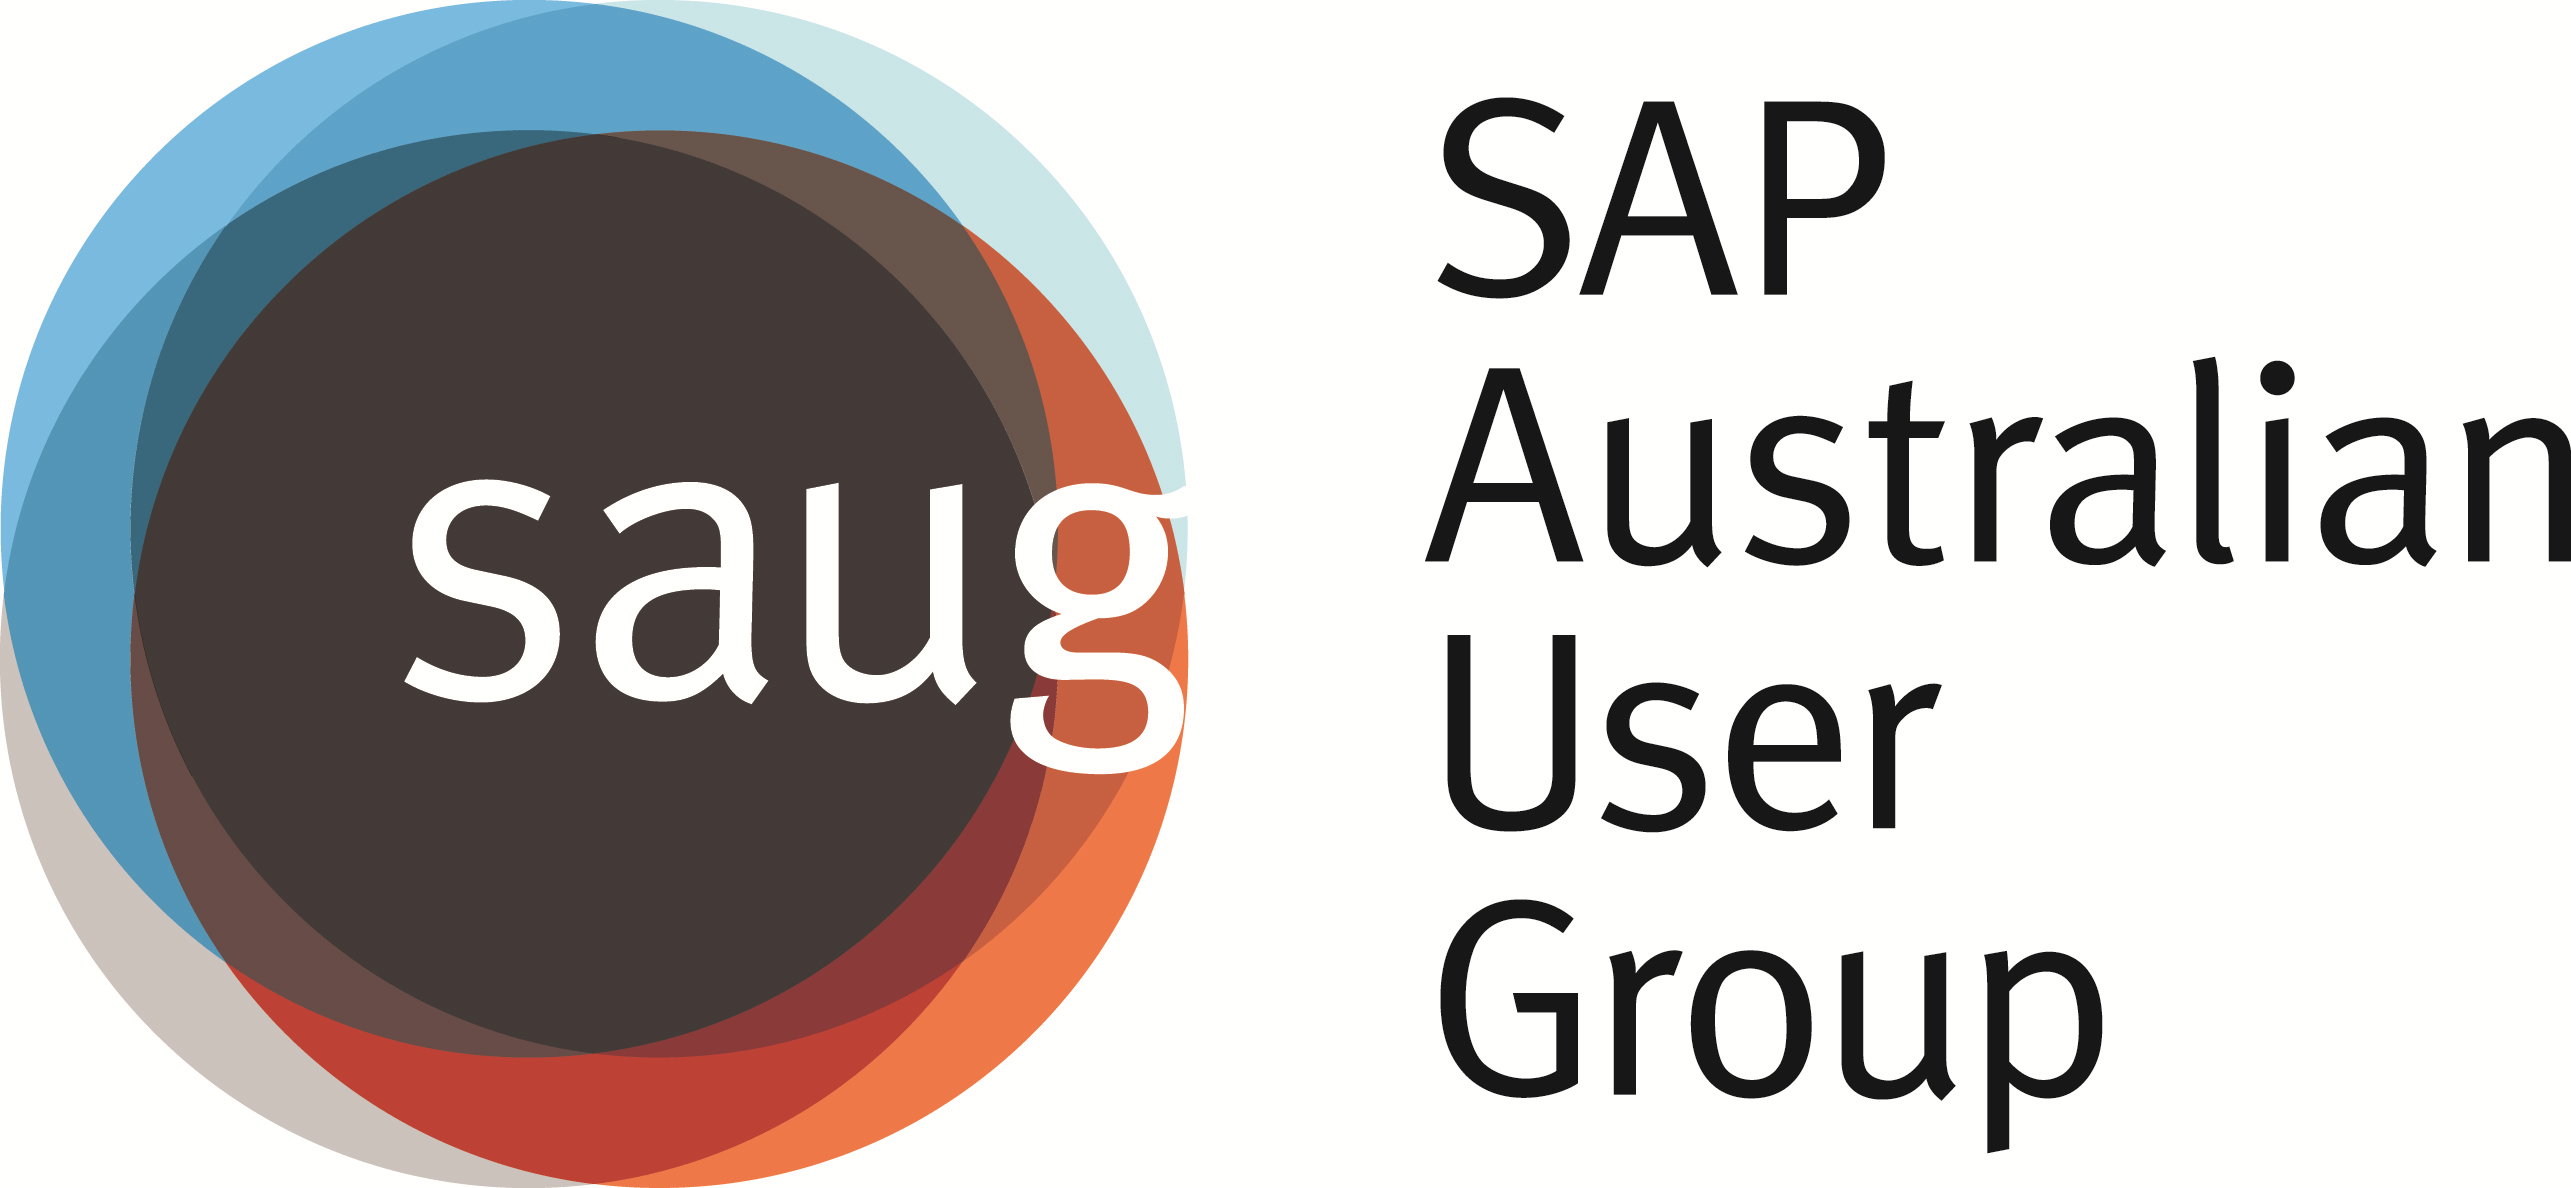 Basis Technologies is excited to participate in its second SAP Australia User Group (SAUG) meeting in Melbourne, Australia on November 15<sup>th</sup>